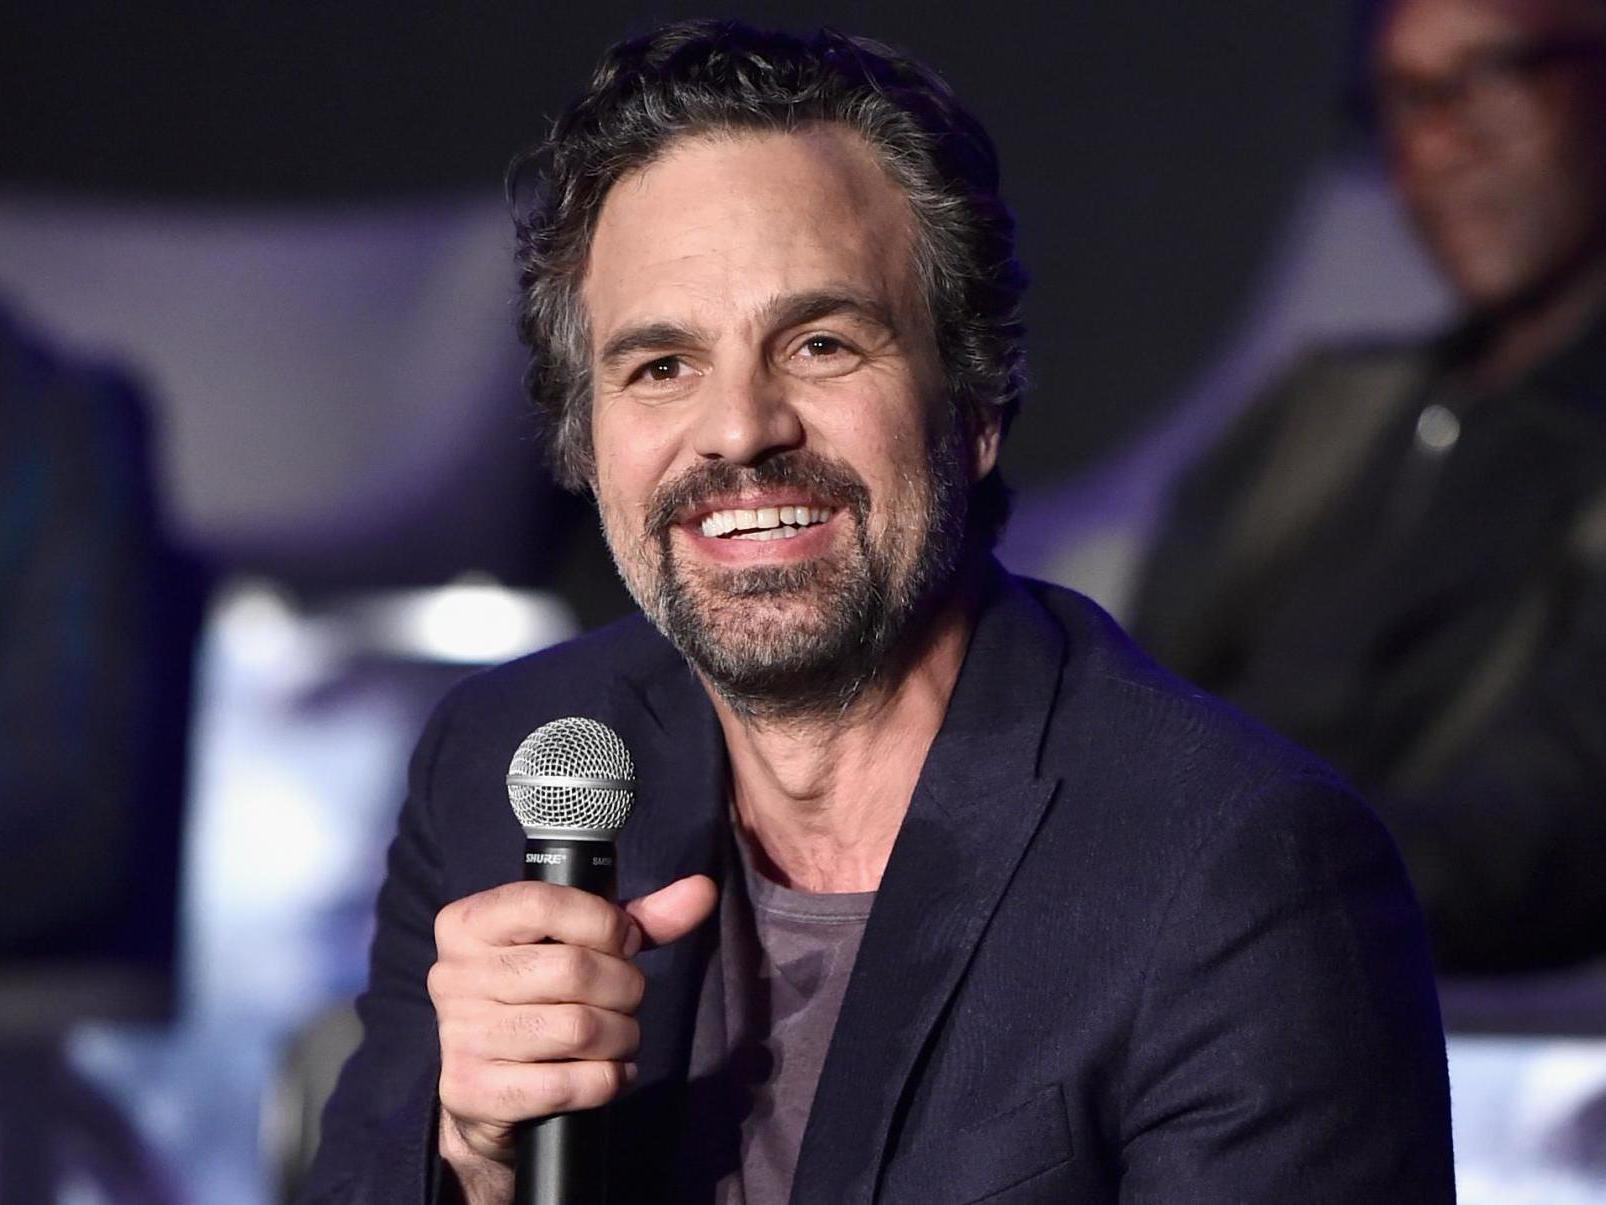 Avengers: Endgame: Mark Ruffalo shot five different endings to avoid spoilers